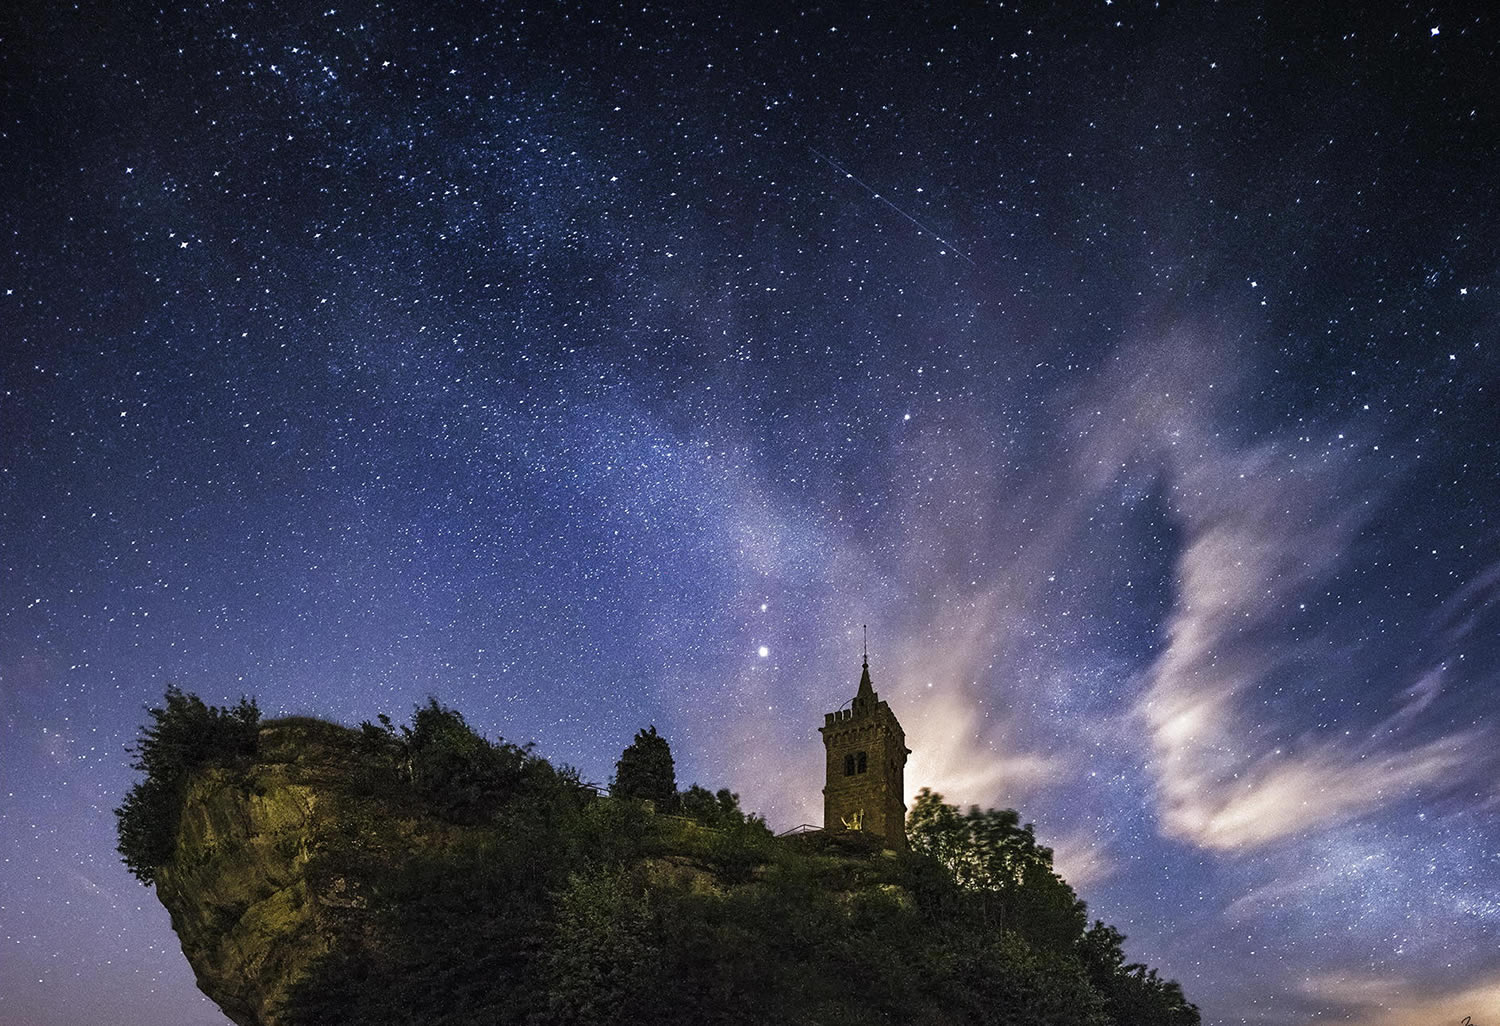 church and milky way sky by nicholas reommelt